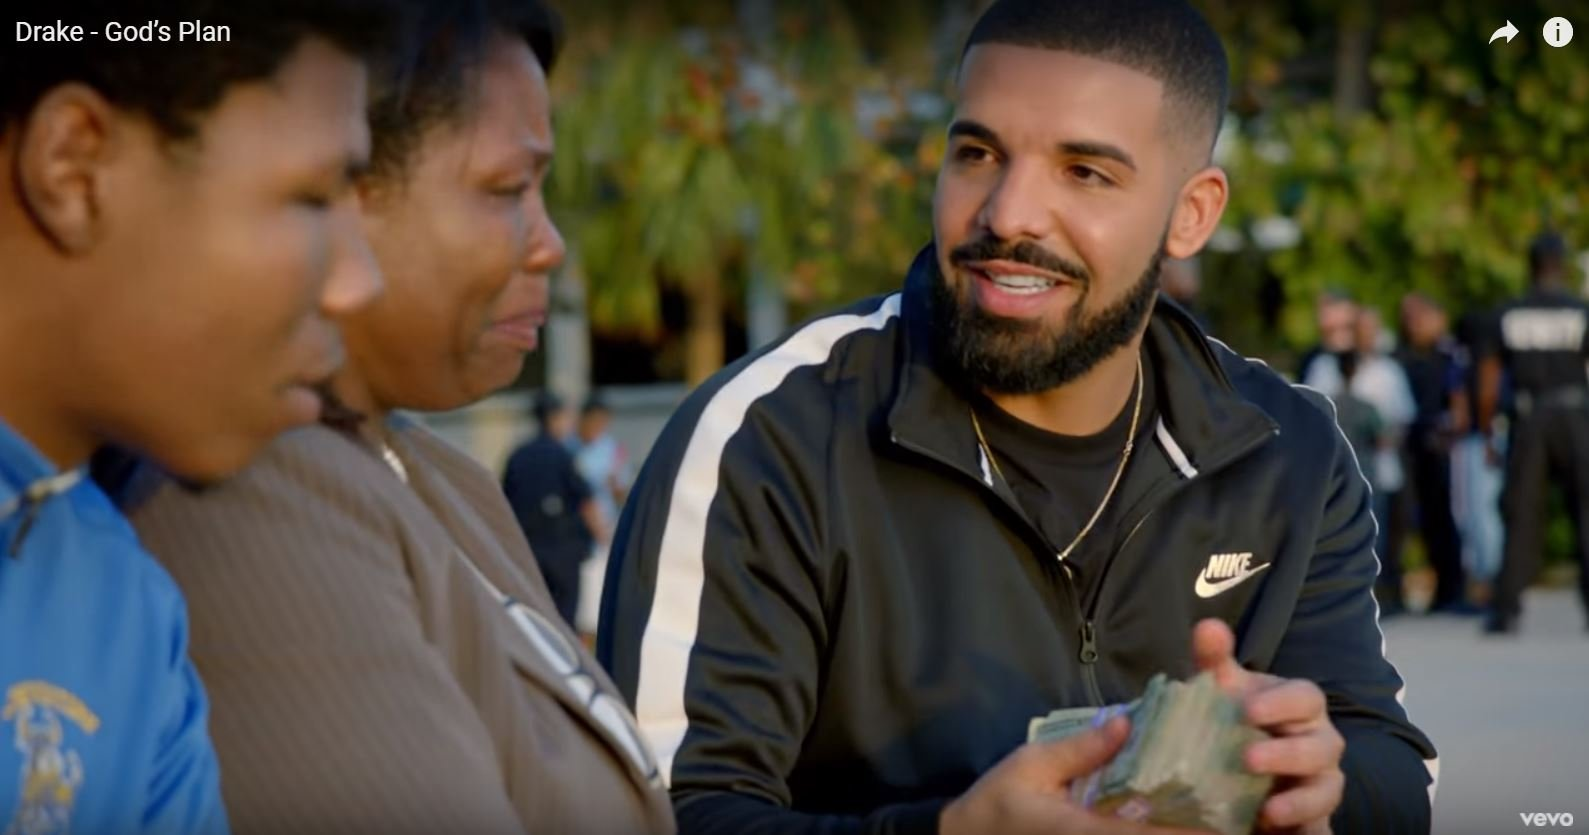 Drake gives away $1 million in 'God's Plan' music video